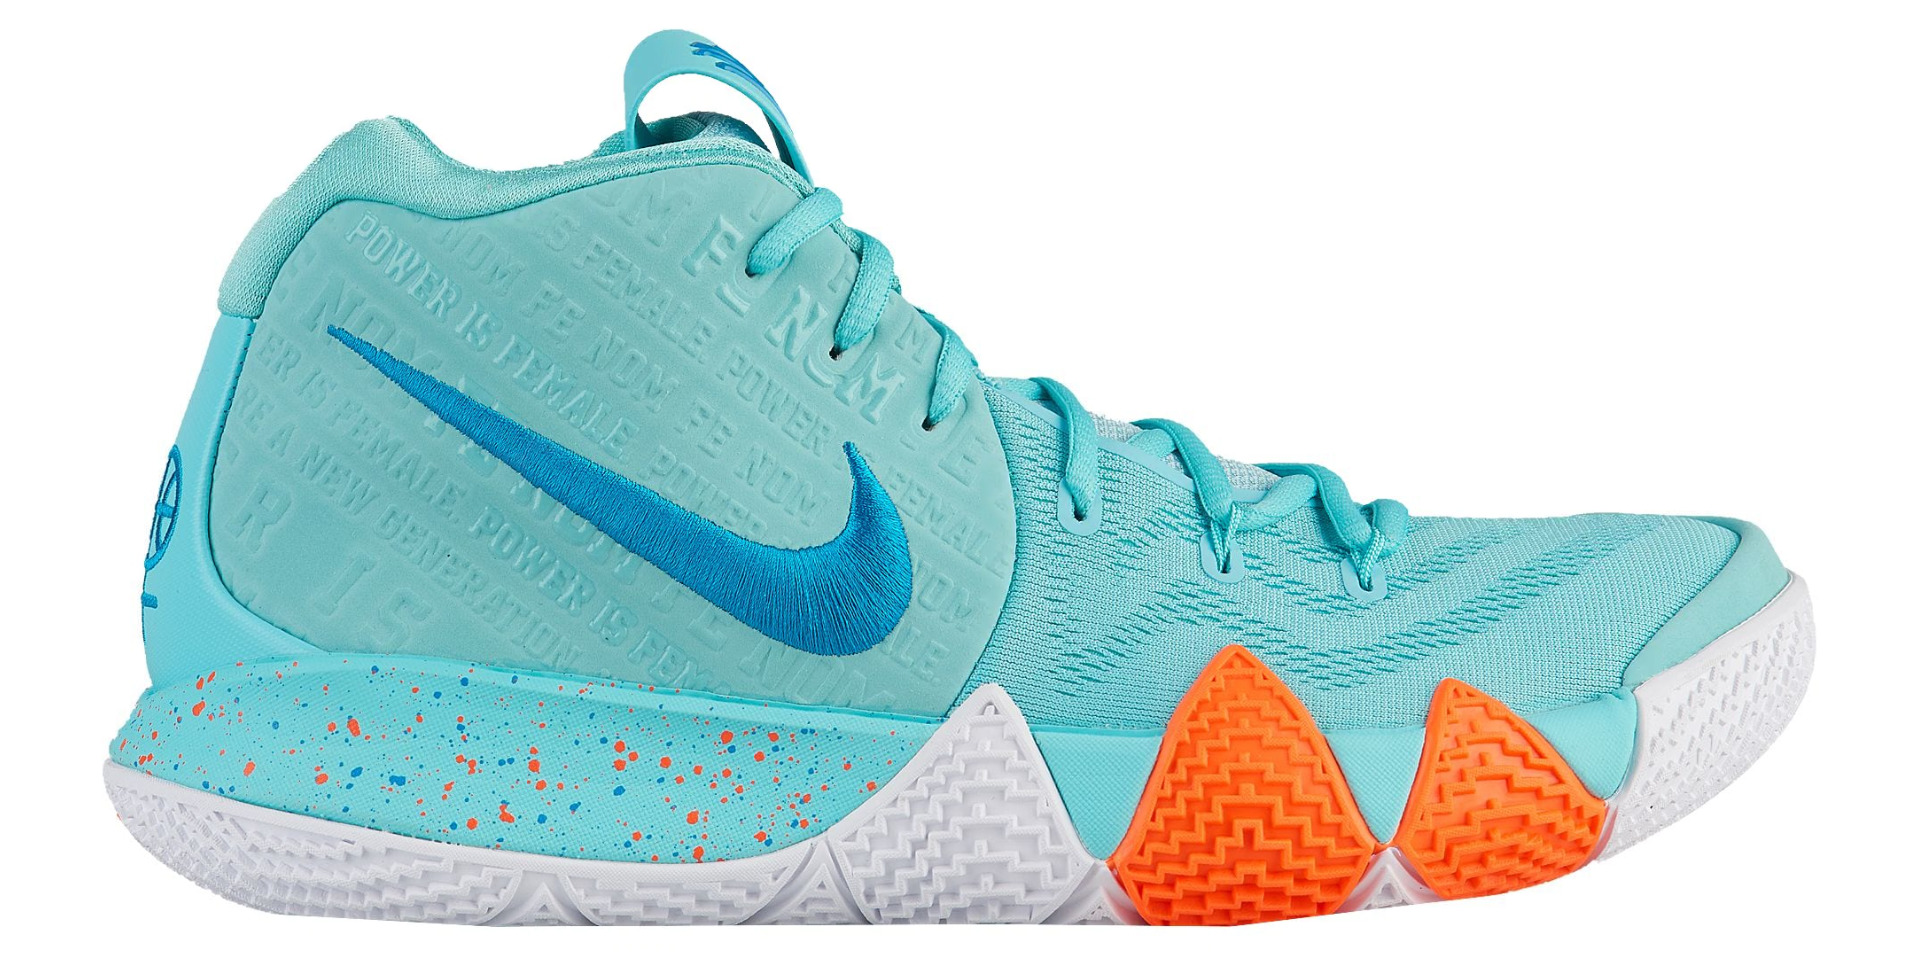 kyrie 4 roses